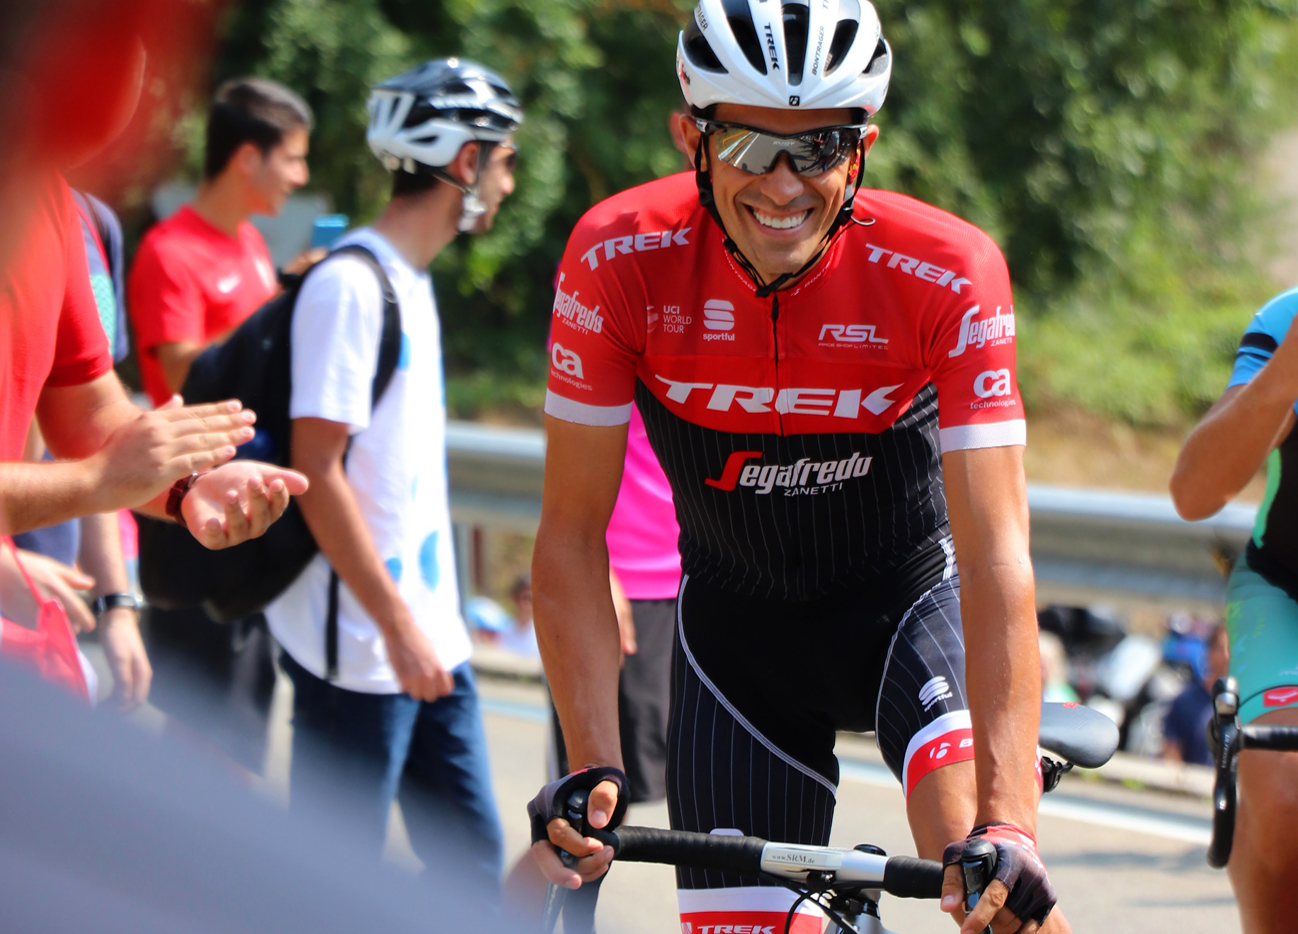 Alberto Contador at La Vuelta a España, his final pro race before retirement